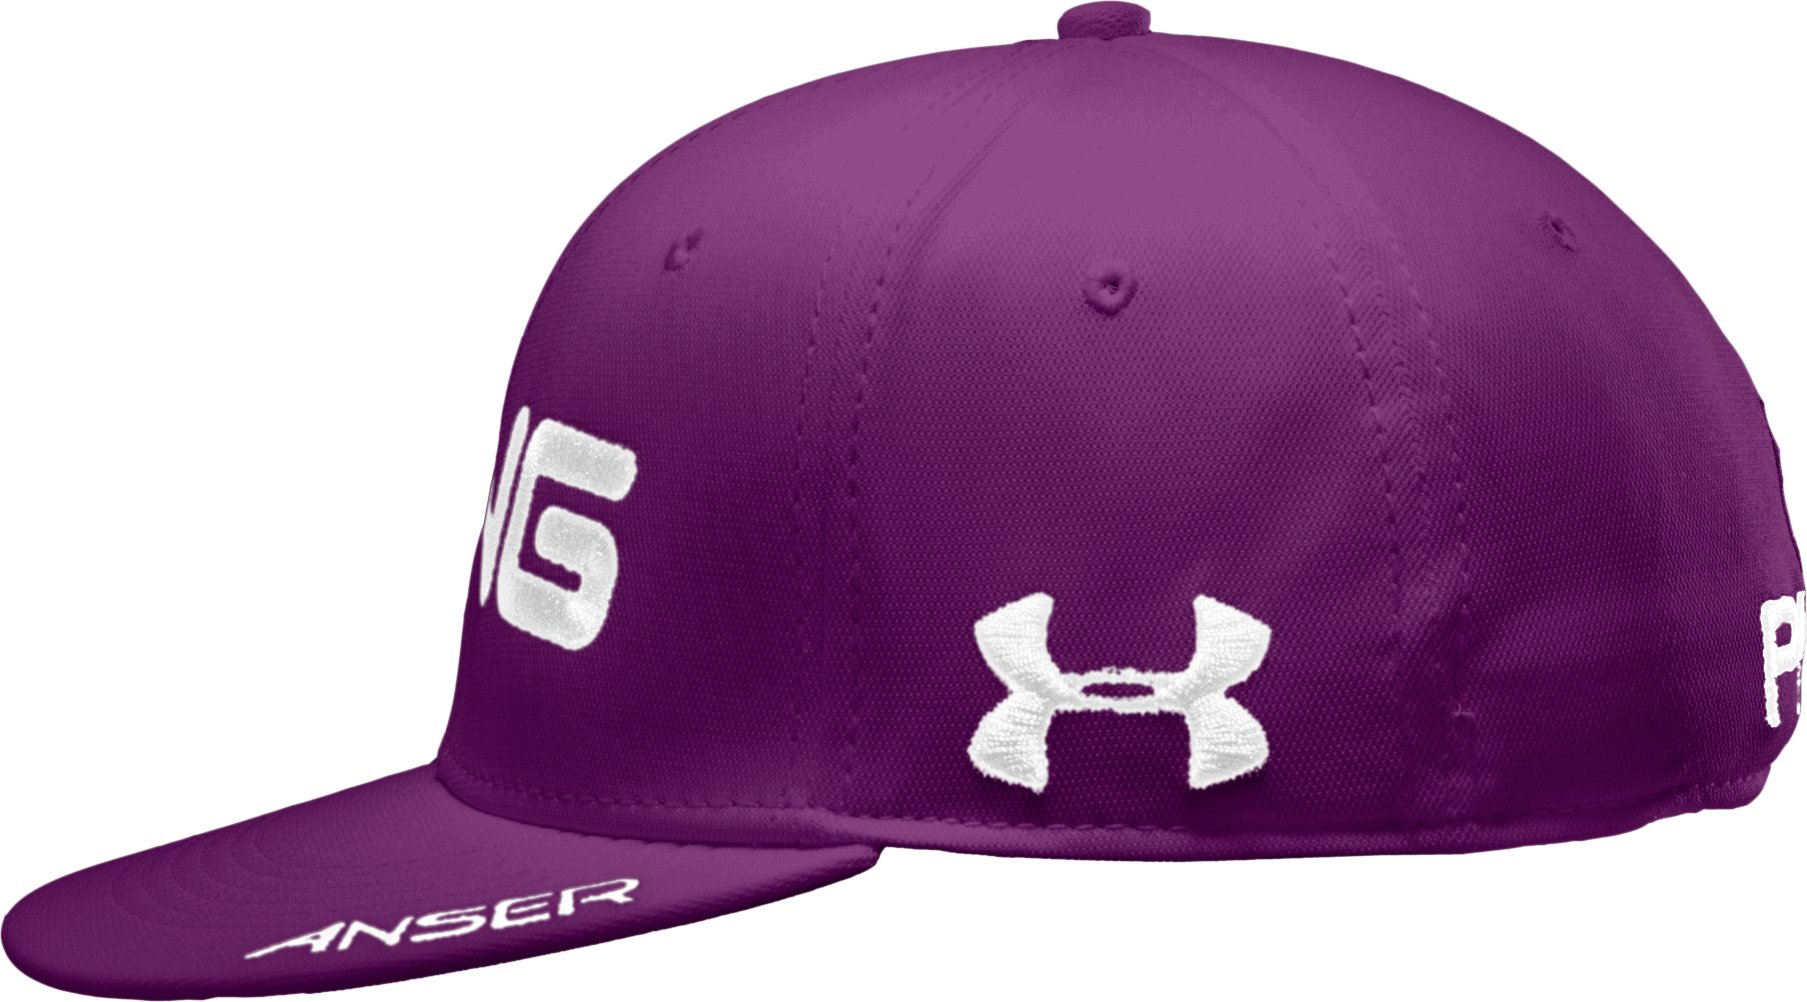 Men's UA HM PING Golf Cap, Cassis